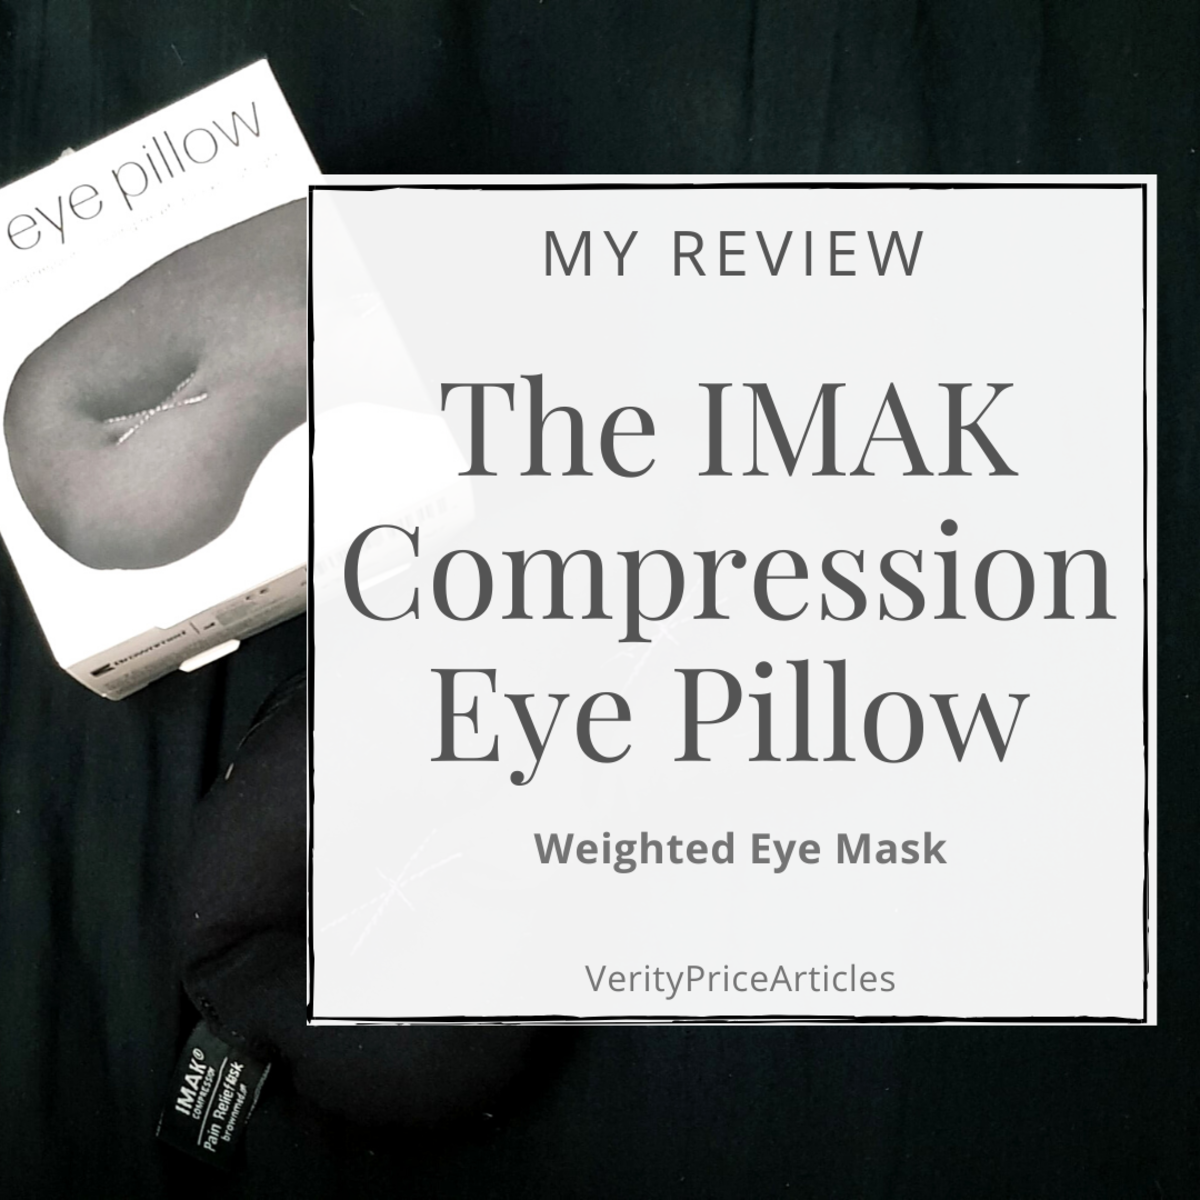 My honest and unsponsored review of the IMAK Compression Eye Pillow (weighted eye mask)